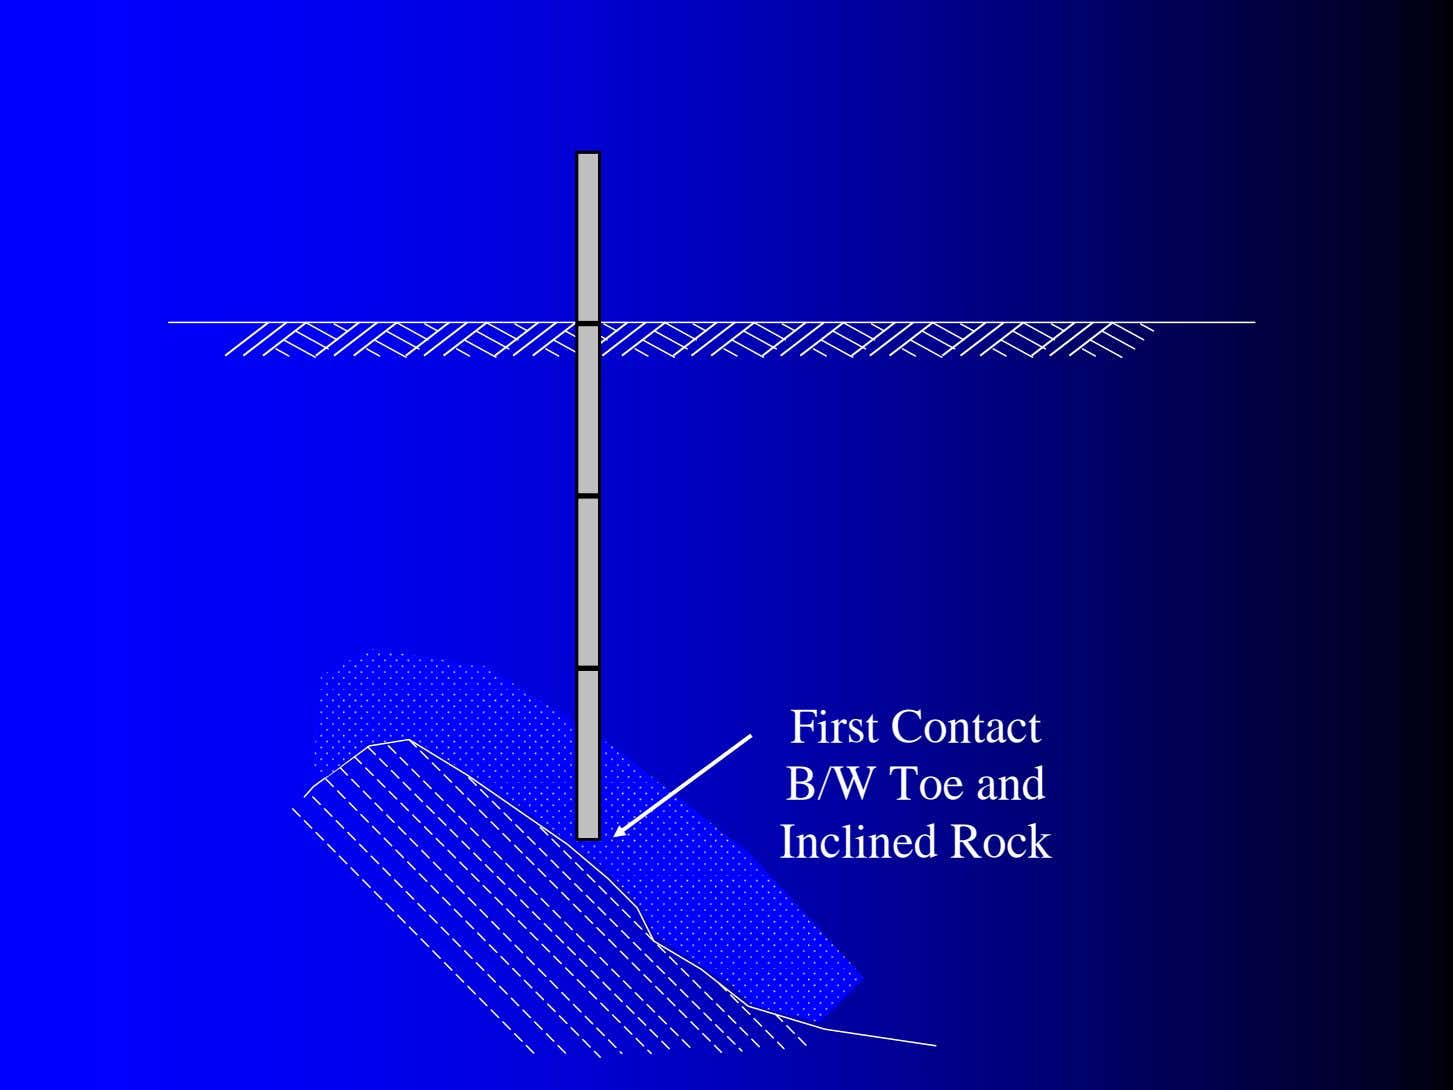 First Contact B/W Toe and Inclined Rock